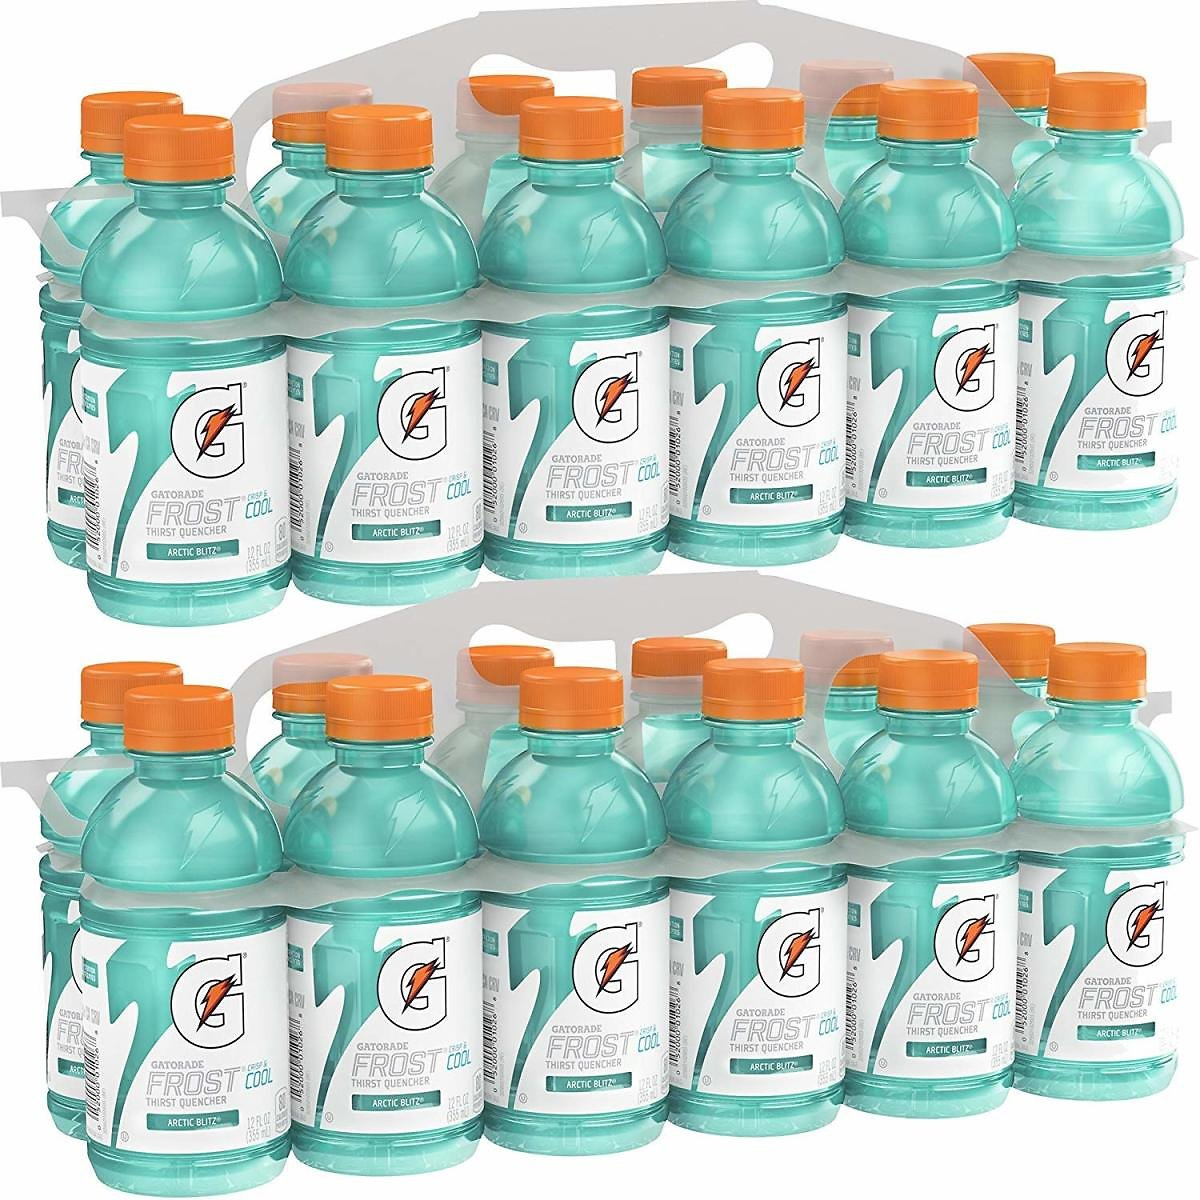 Gatorade Thirst Quencher, Fruit Punch and Cool Blue Variety Pack, 12 Ounce (Pack of 24) : Grocery & Gourmet Food